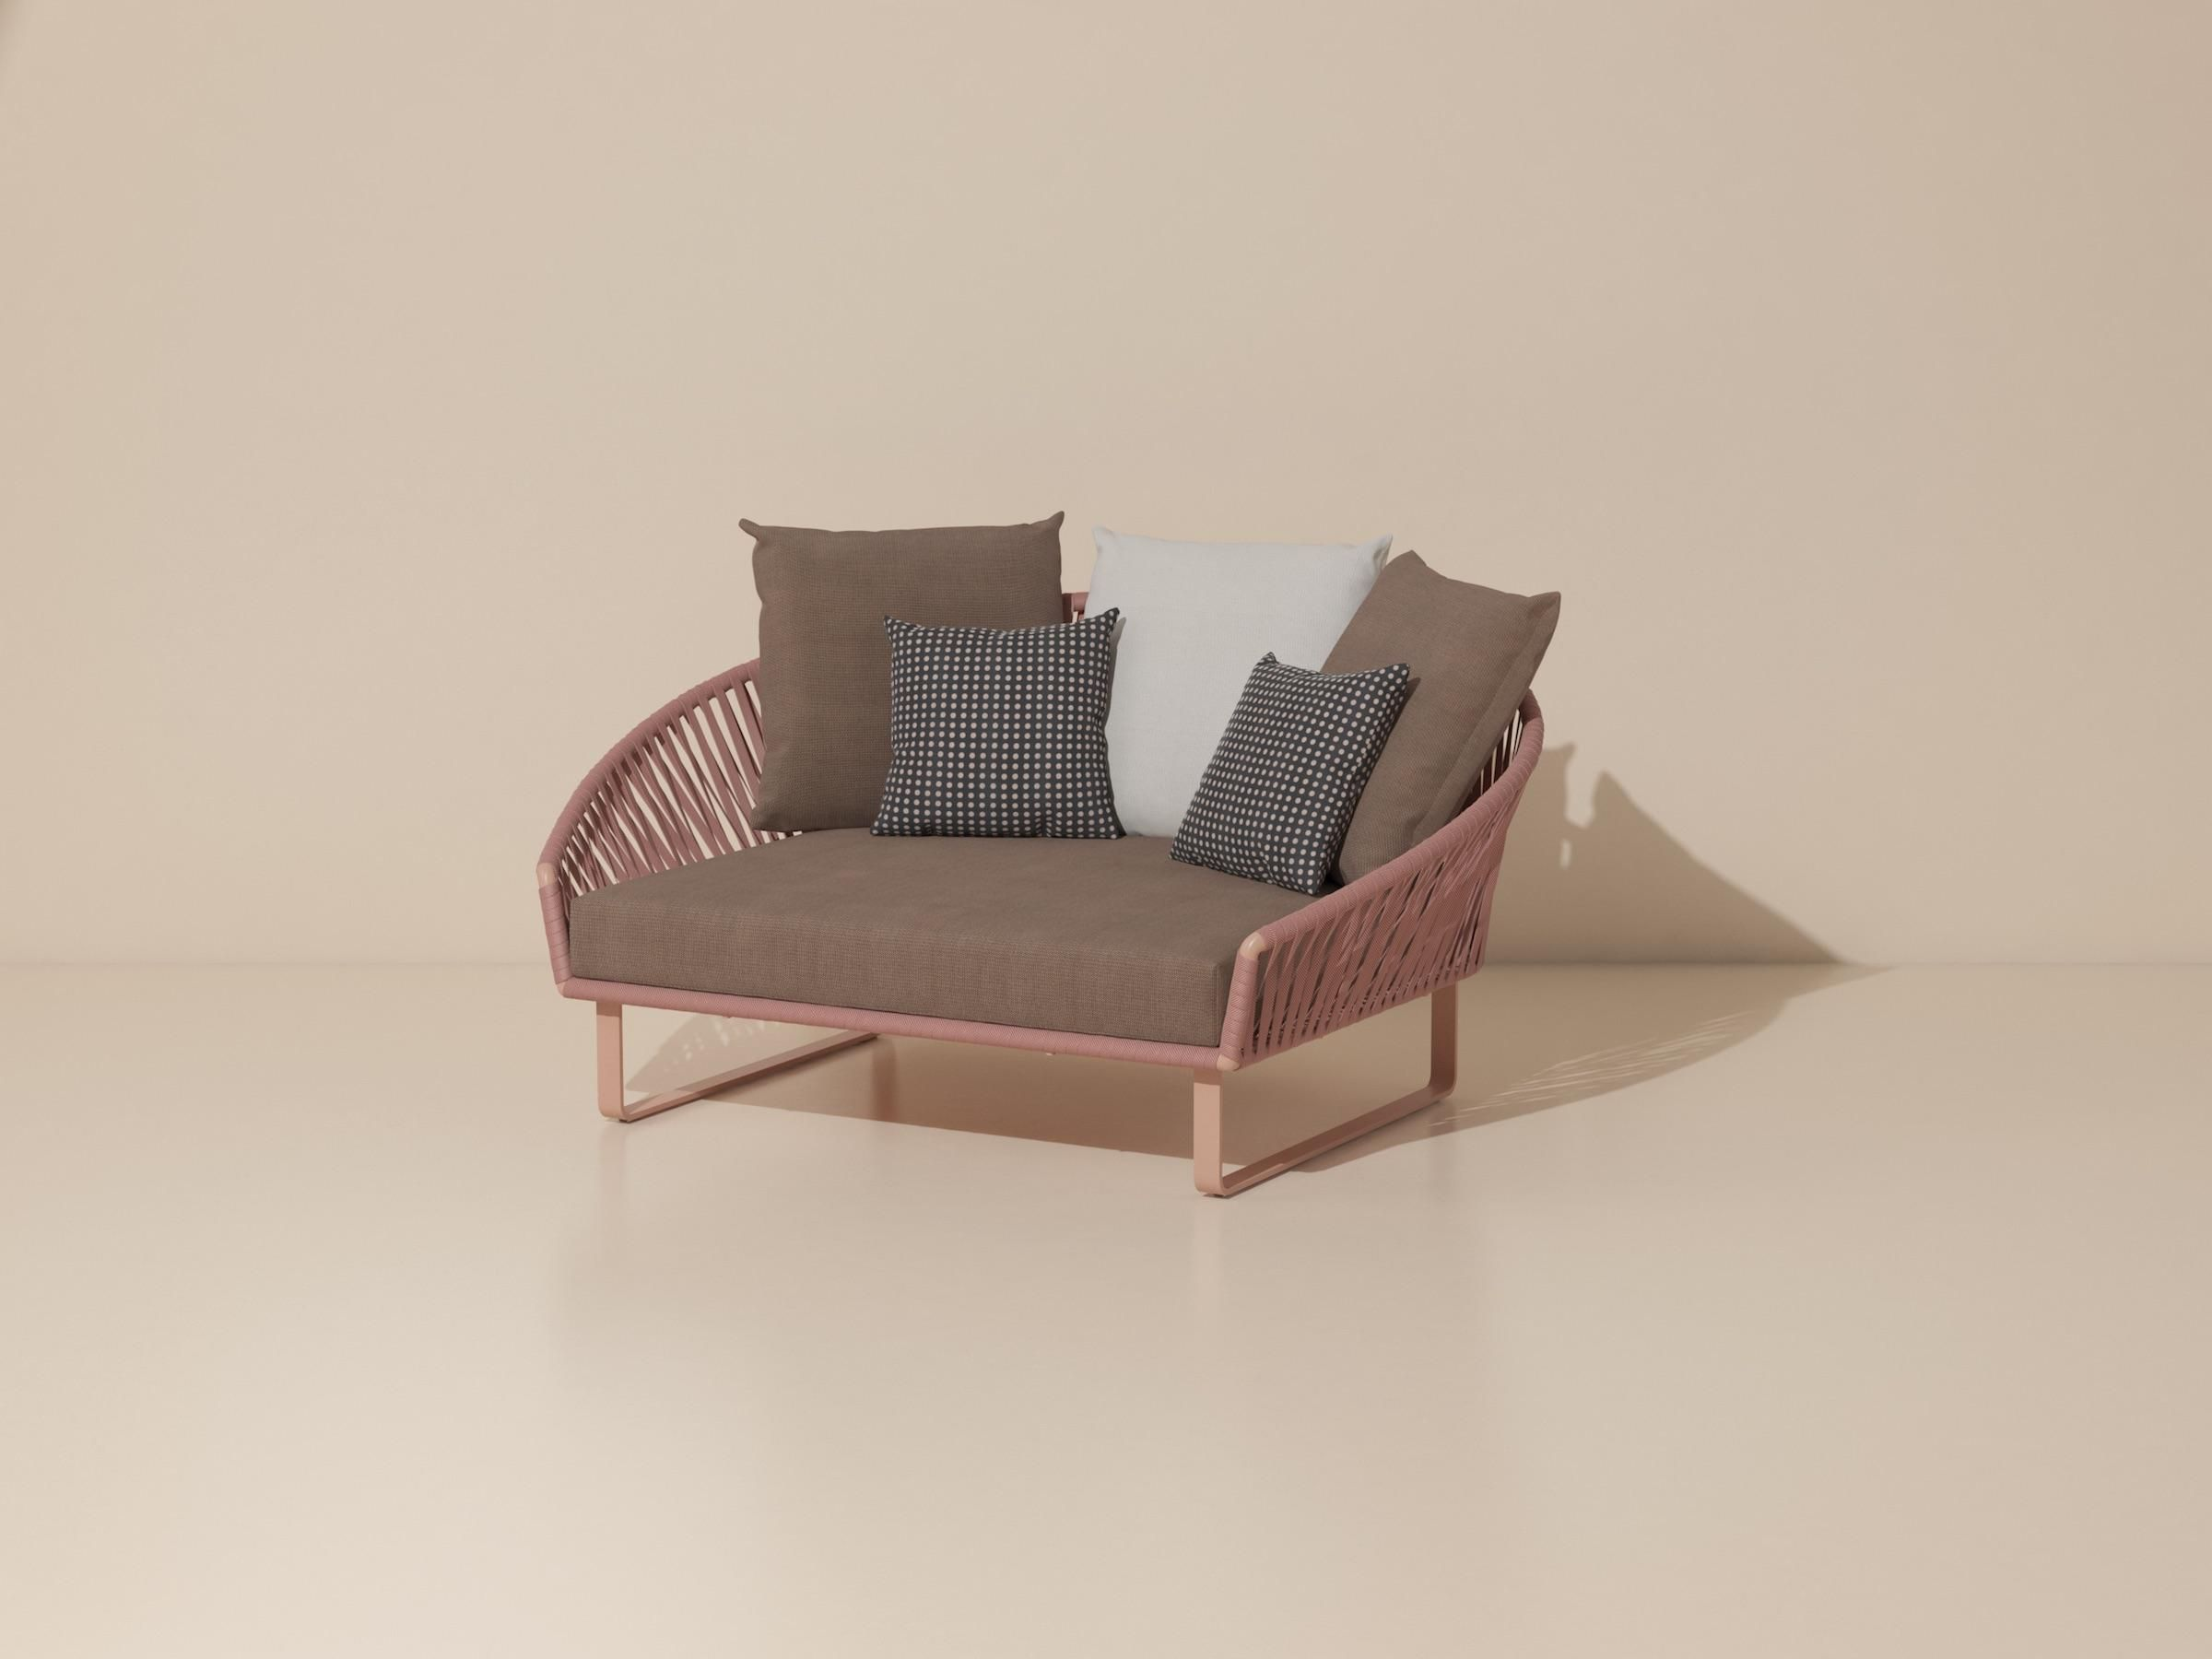 Relax Sofa Kettal Bitta Daybed Lumber Lane Outdoor Daybed Sofa